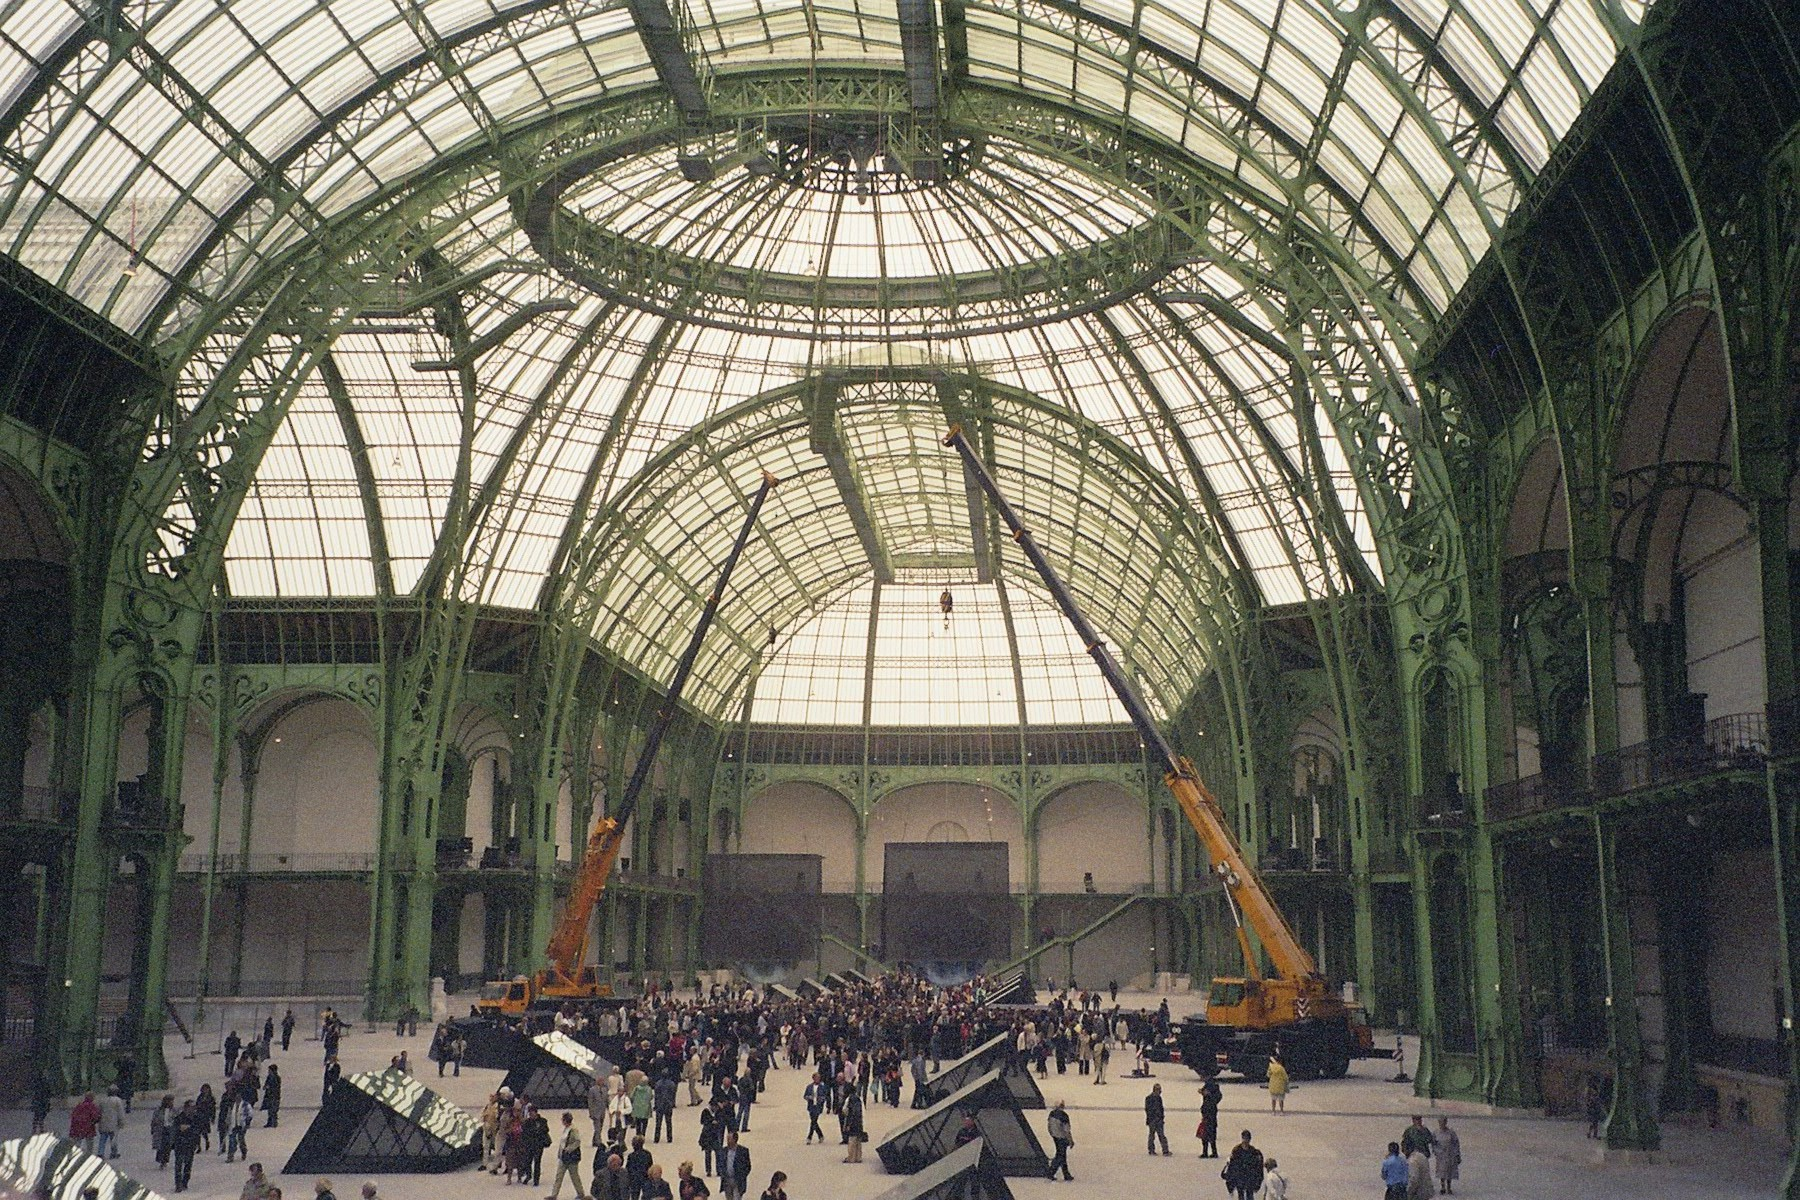 The interior of the Grand Palais, photographed on January 7, 2006.